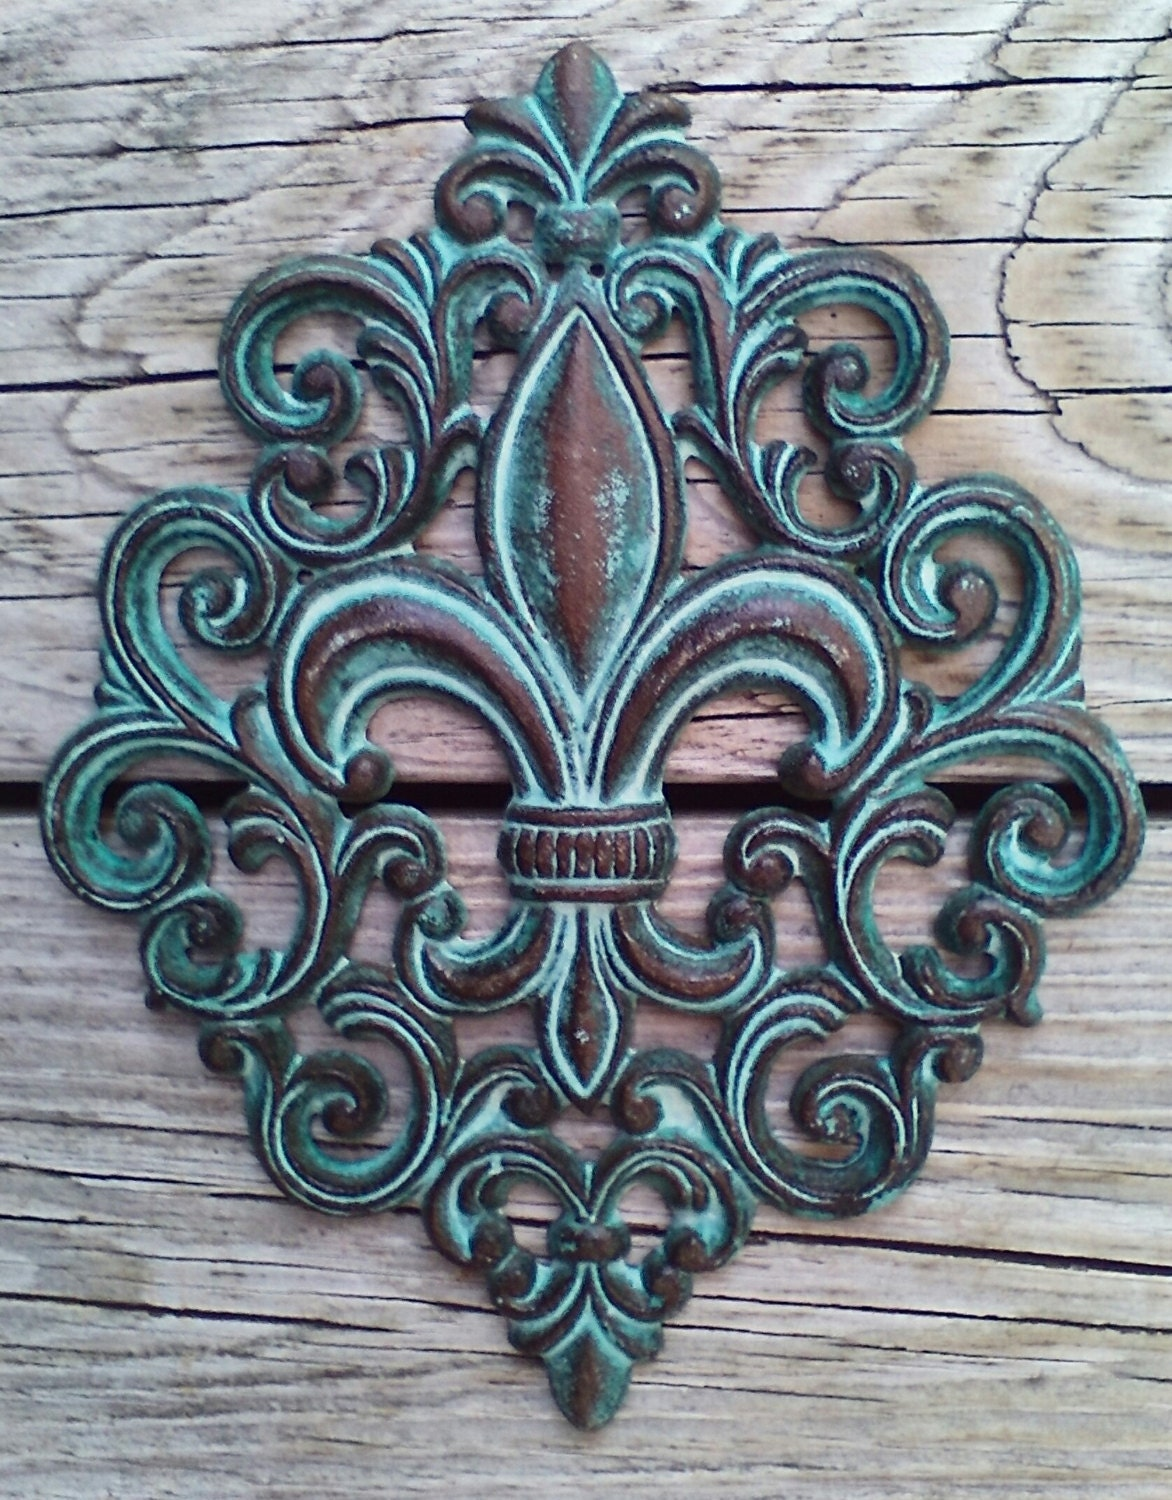 wall art de fleur de lis ii by tava studios turquoise design framed art print wall d cor ebay. Black Bedroom Furniture Sets. Home Design Ideas